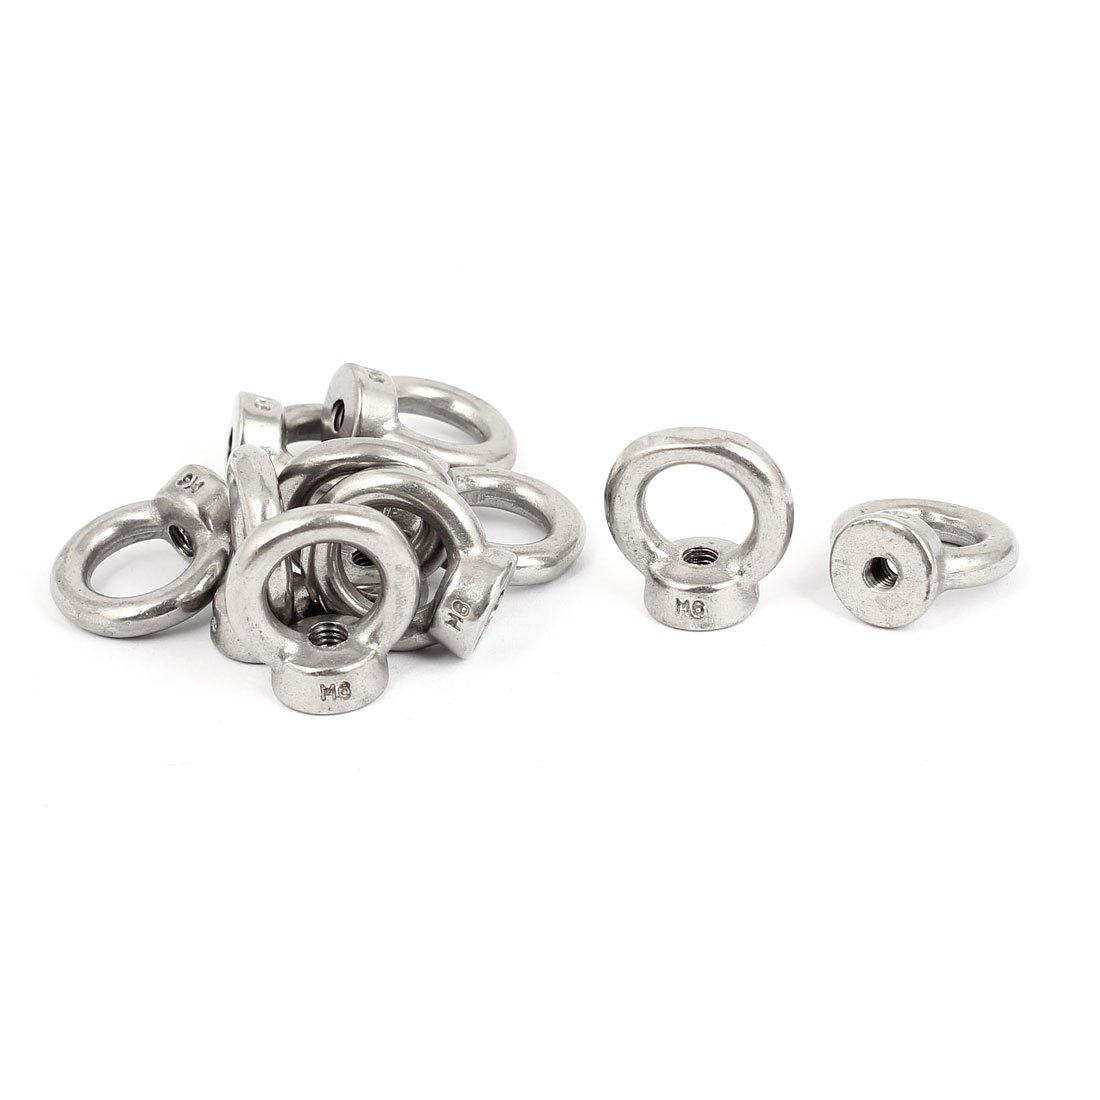 Marine M6 Female Thread Metal Lifting Eye Nuts Ring 10pcs